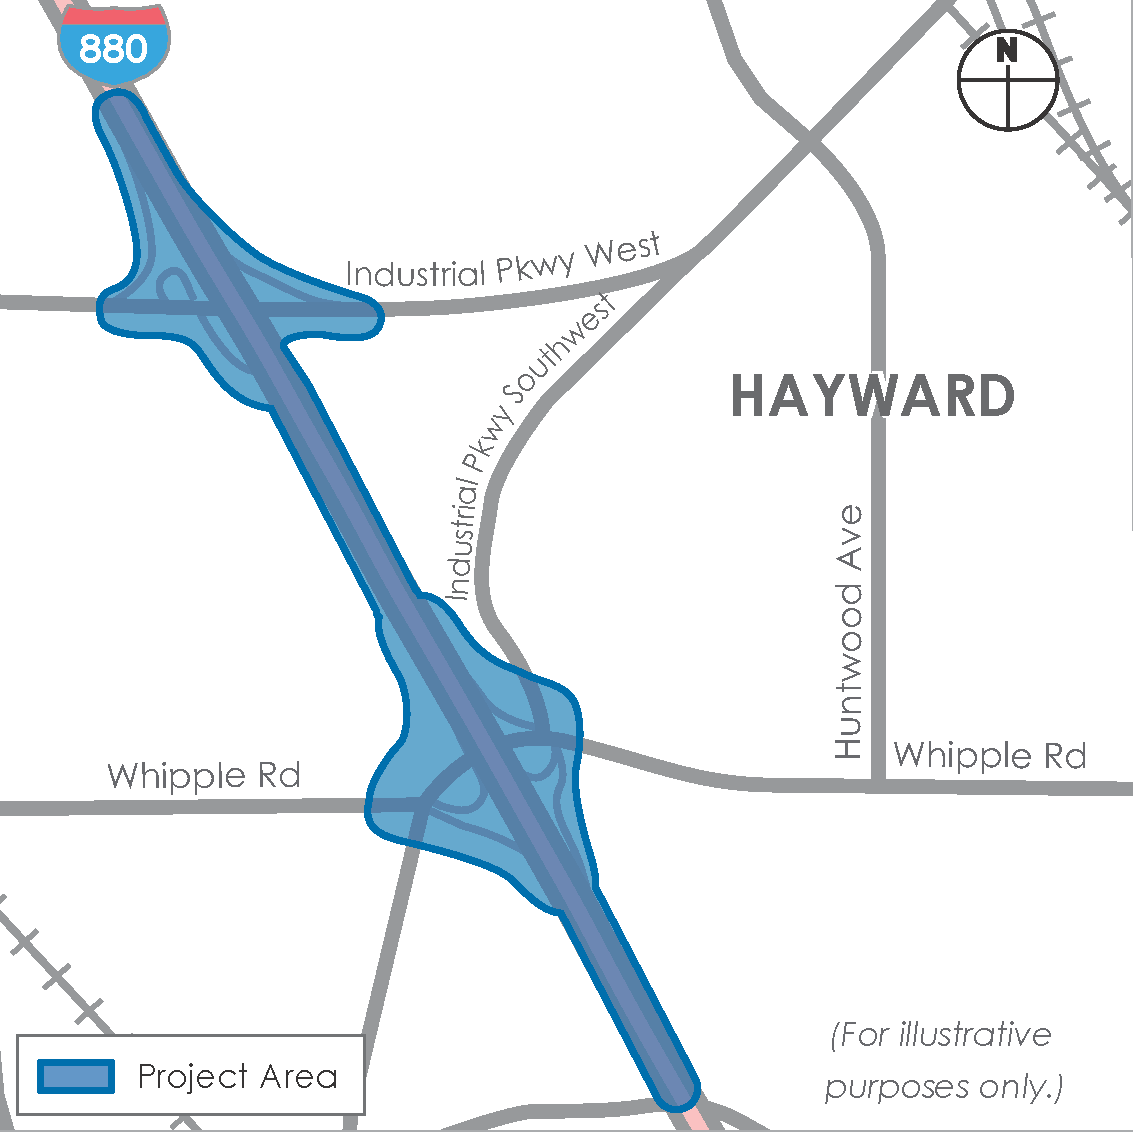 Public Informational Meetings for the Interstate 880 Interchange Improvements (Whipple Road/Industrial Parkway Southwest and Industrial Parkway West) Project